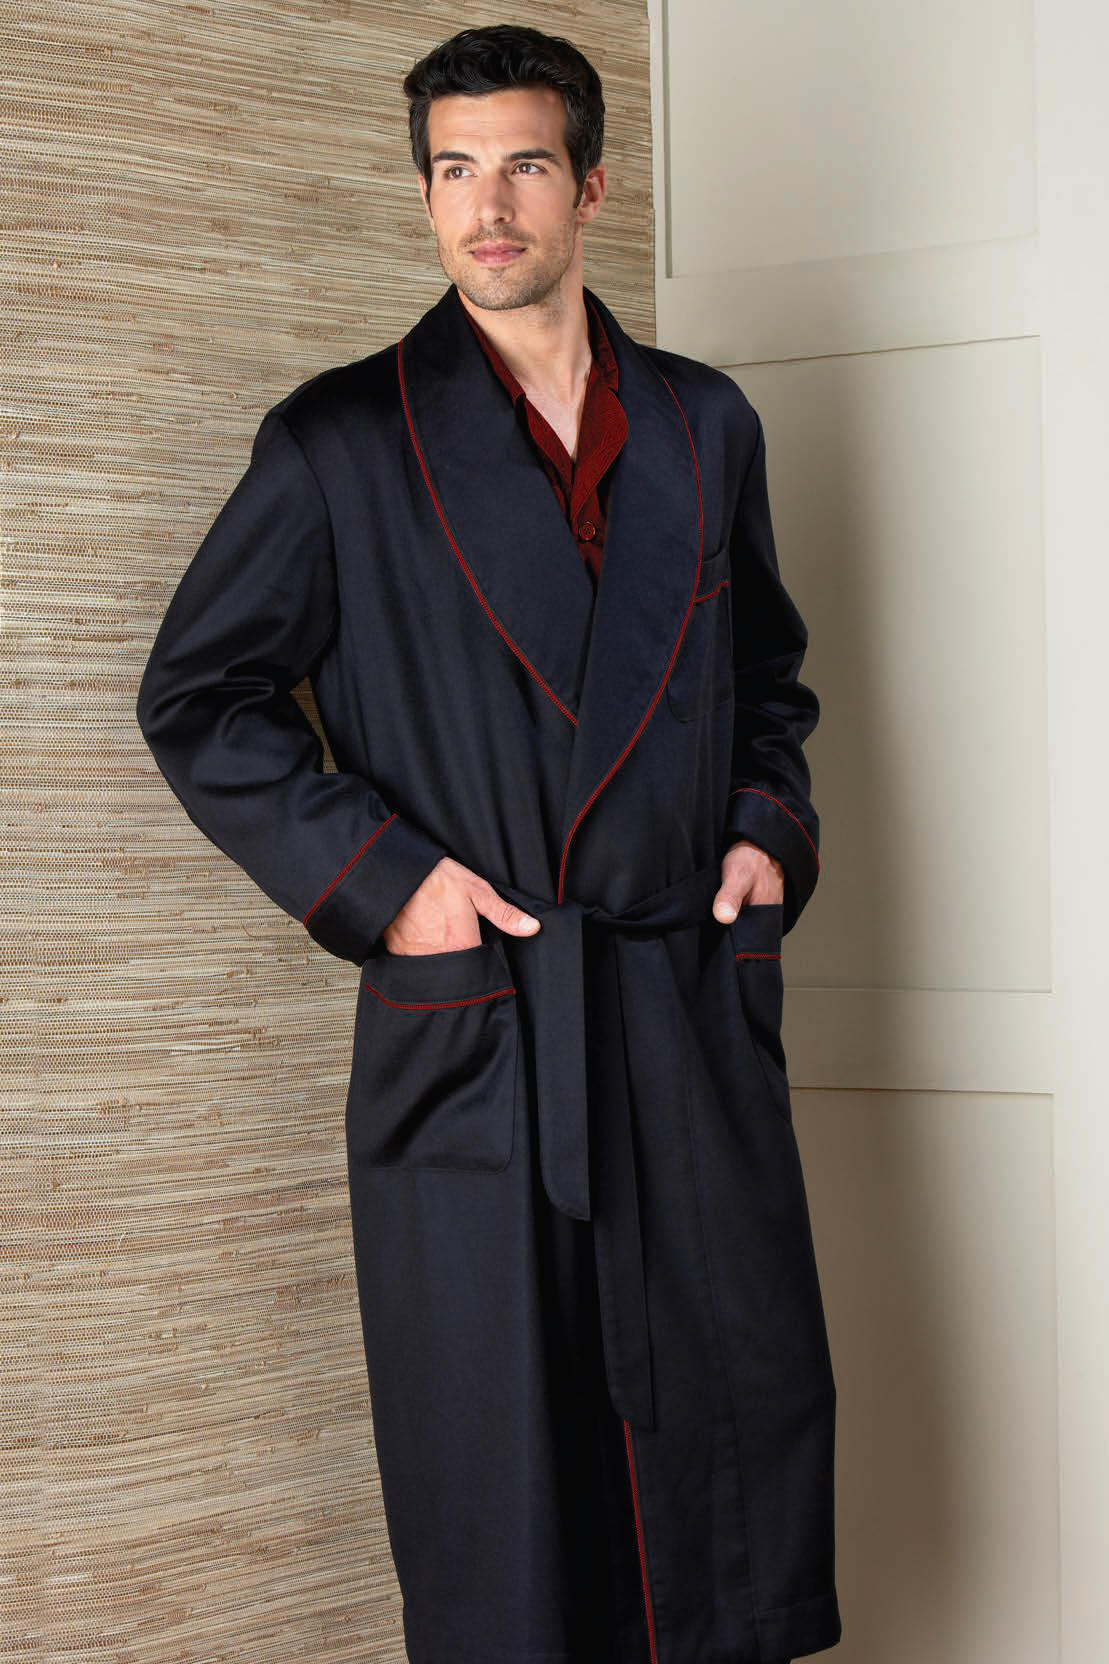 Cashmere Personalized Robes from Dann Clothing, Pure Cashmere ...